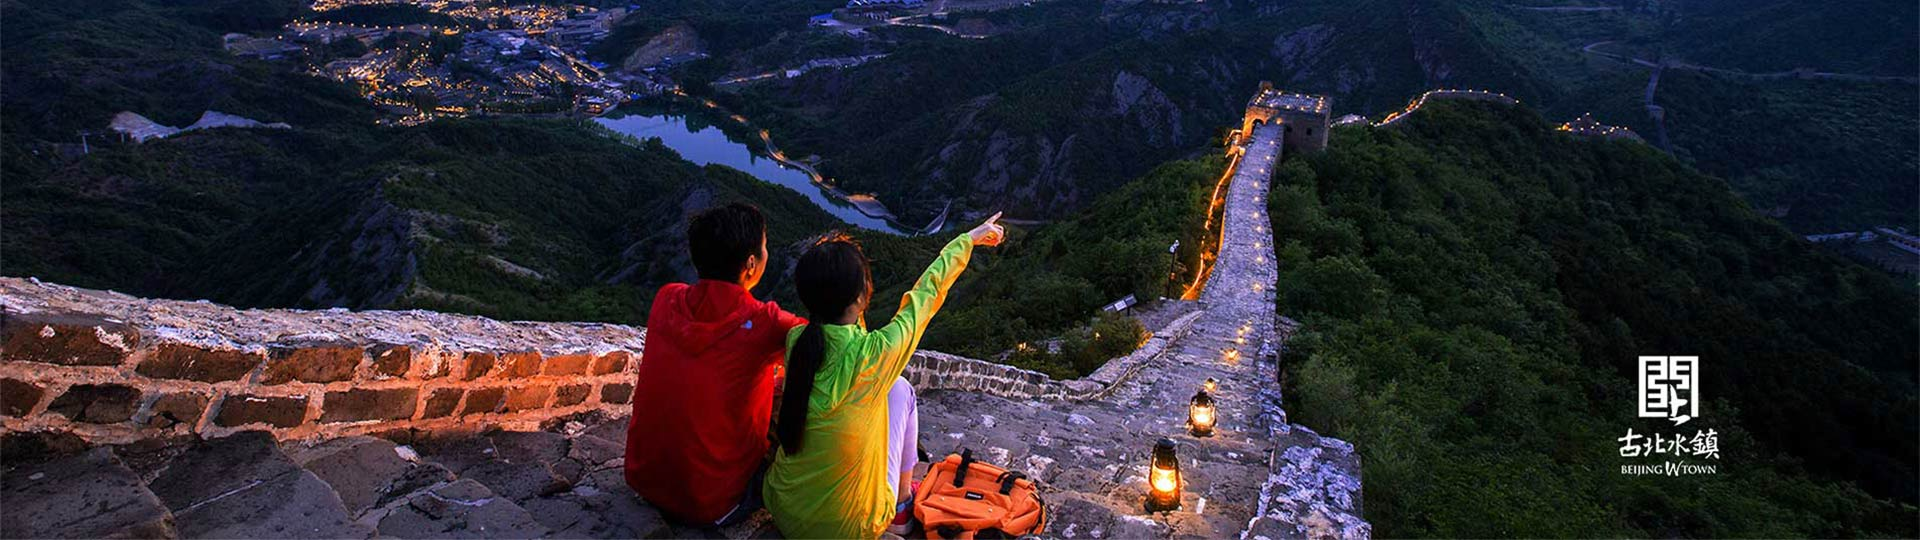 Top 10 viajes china